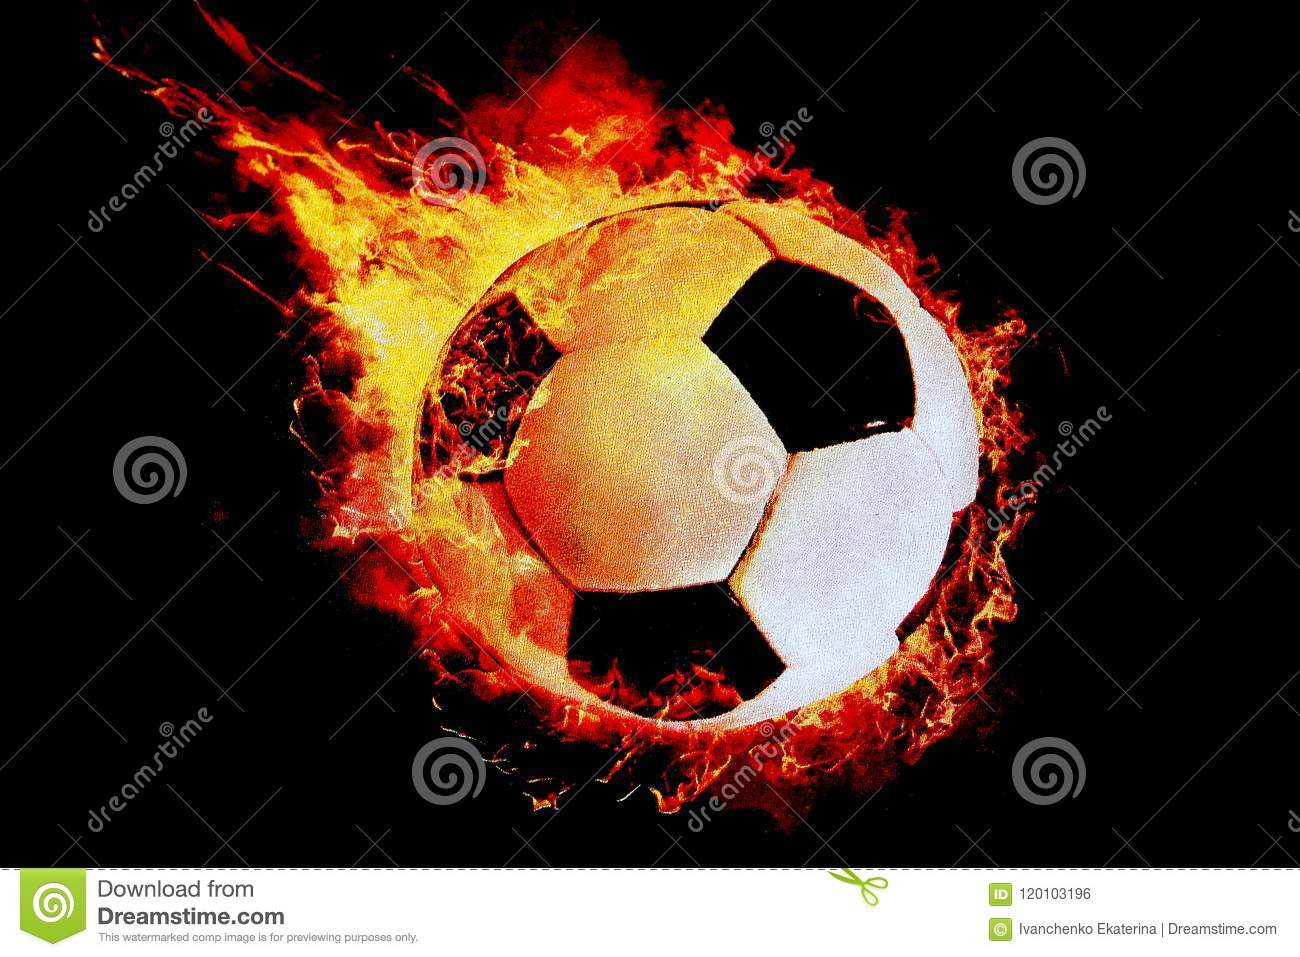 A football ball wrapped in fire flies on a black background!